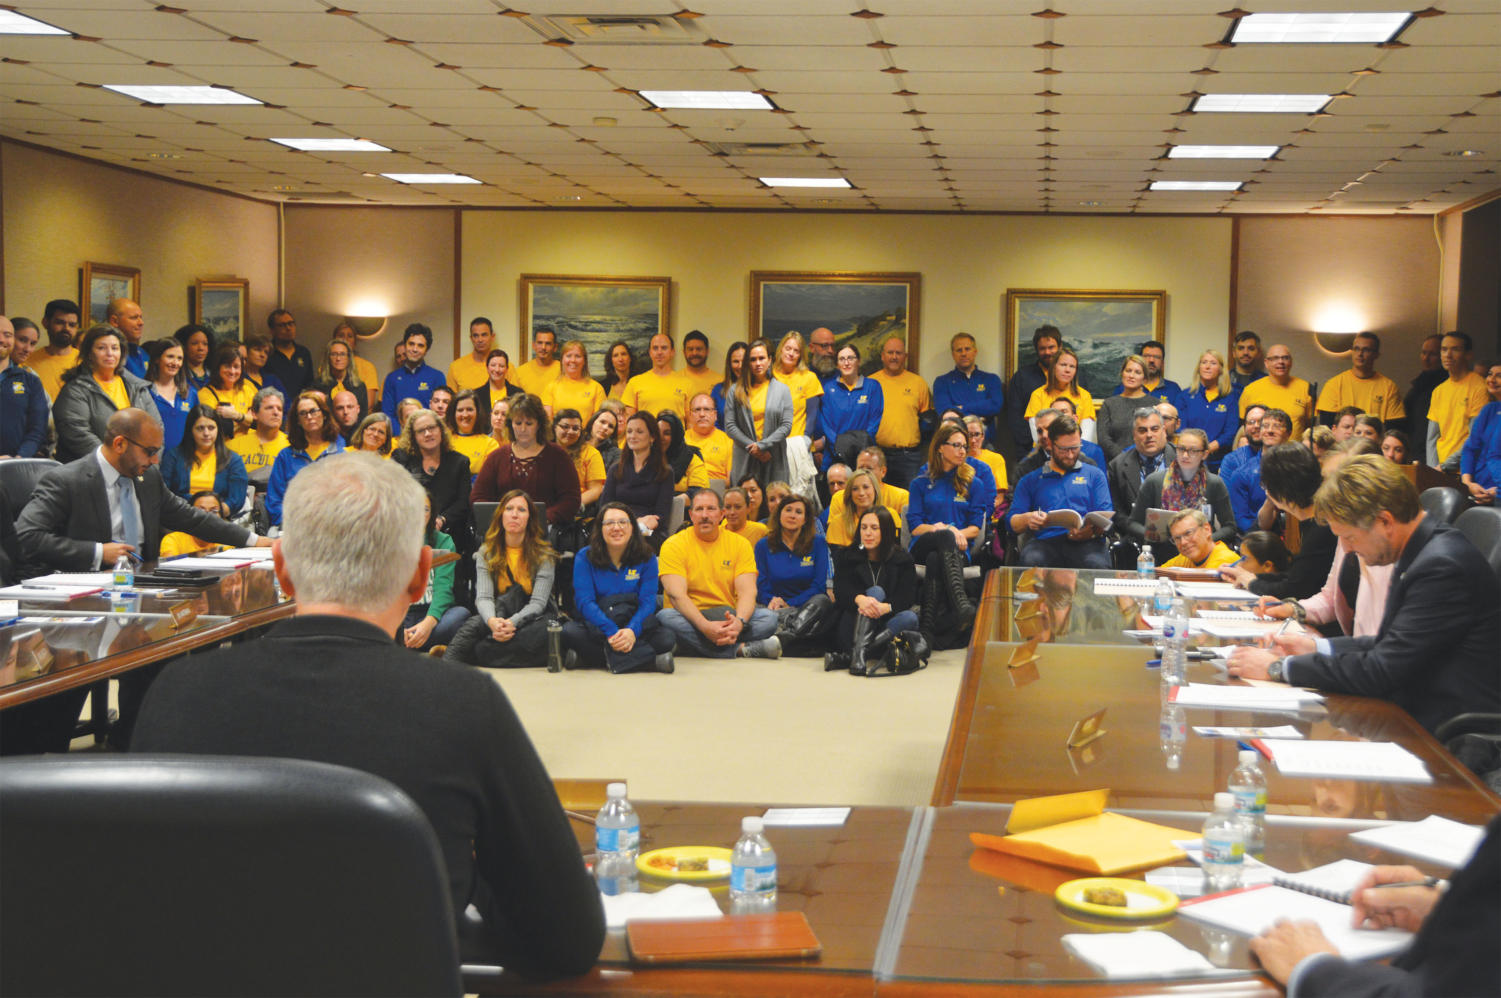 Teachers gather for the entirety of the Board of Education meeting in  NC room 104 on Nov. 19 (Breen/LION).